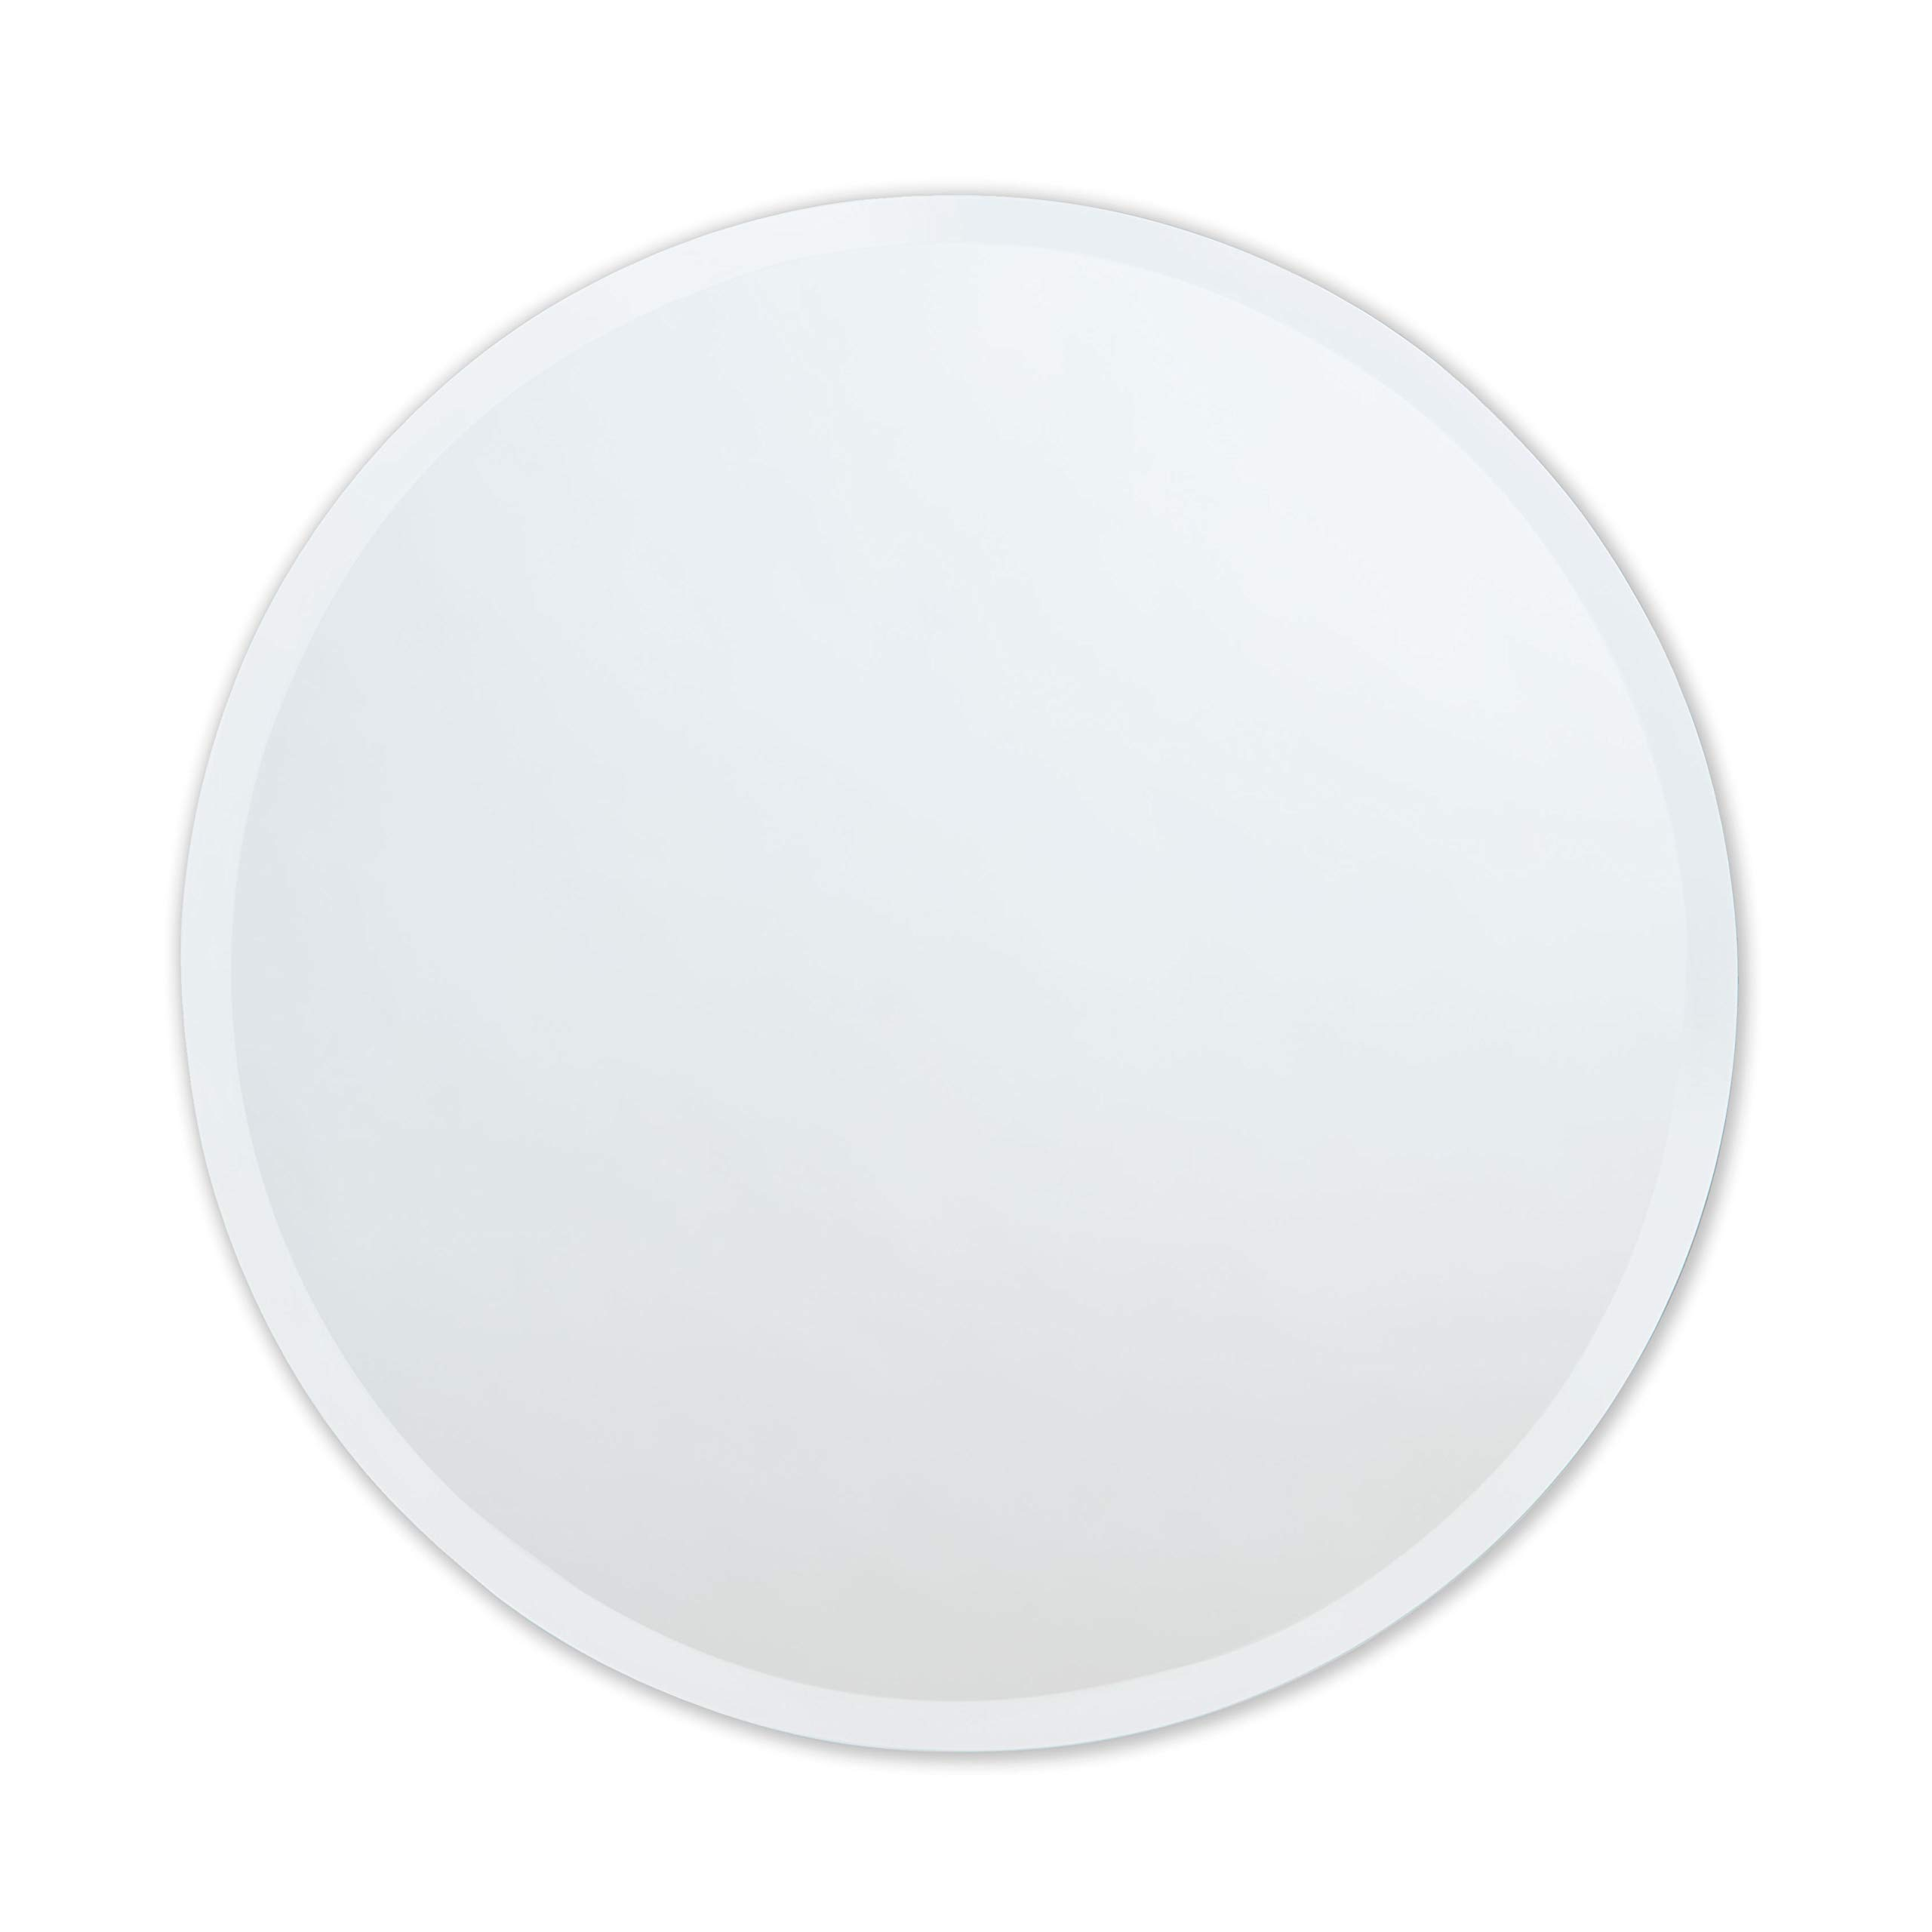 Round Frameless Wall Mirror | Bathroom, Vanity, Bedroom Mirror | 24-inch Diameter Circle | Beveled Edge by The Better Bevel